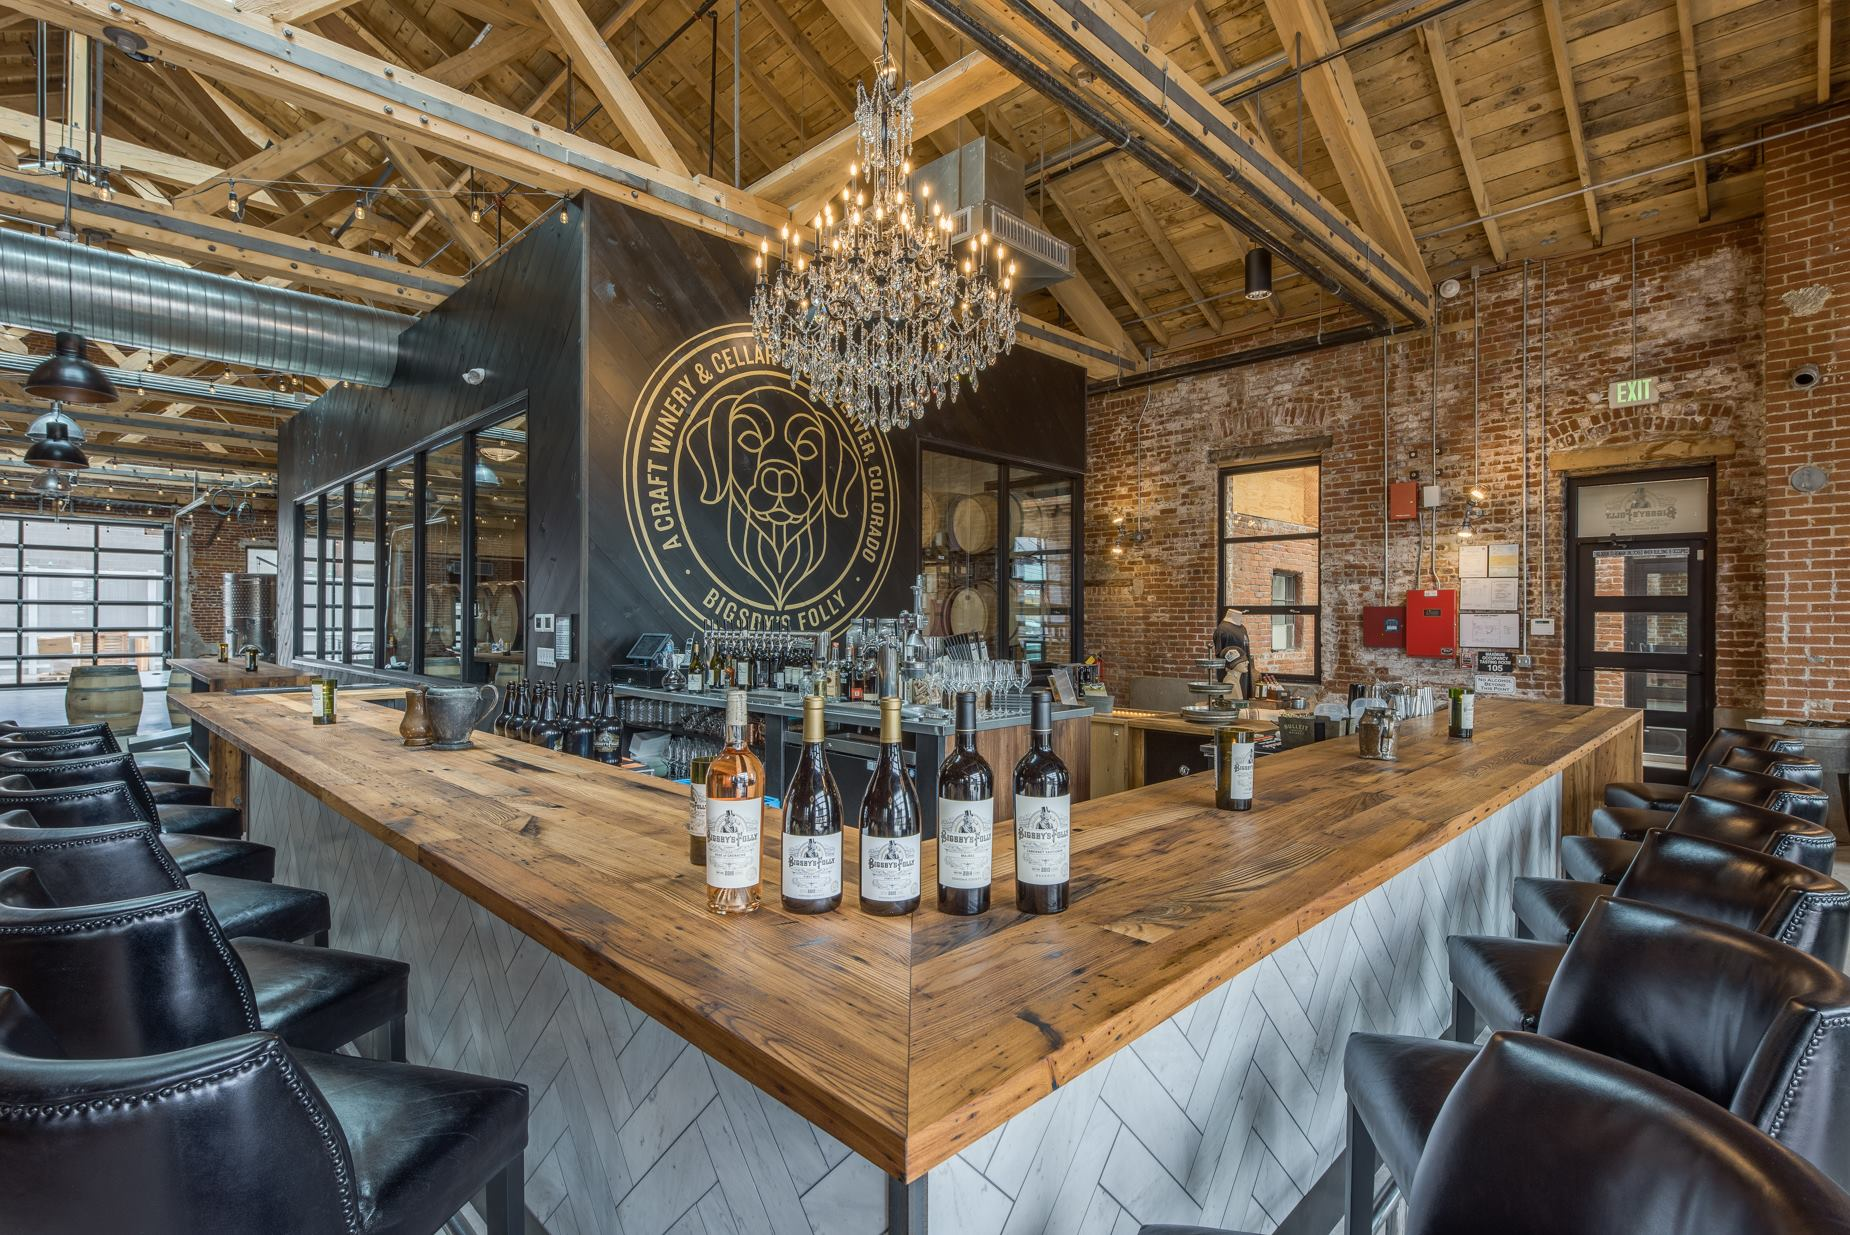 Bigsby's Folly - House wines star at this full bar with an industrial-artsy vibe and a menu of small plates.